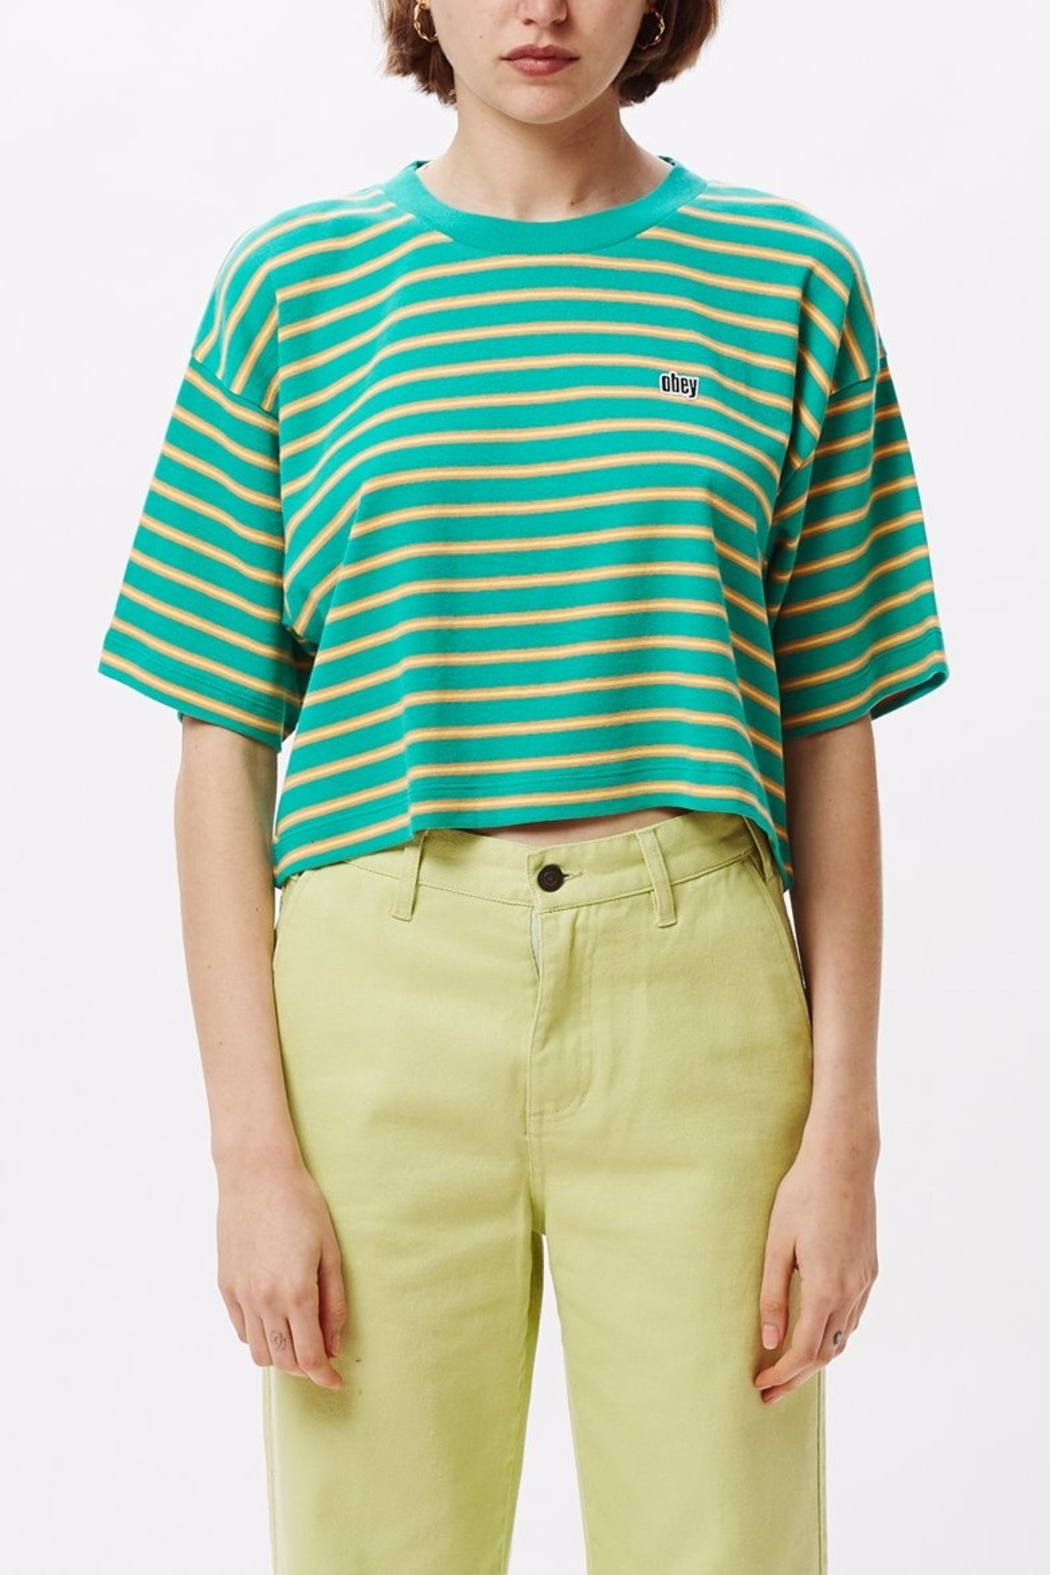 Obey Striped Crop Top - Main Image